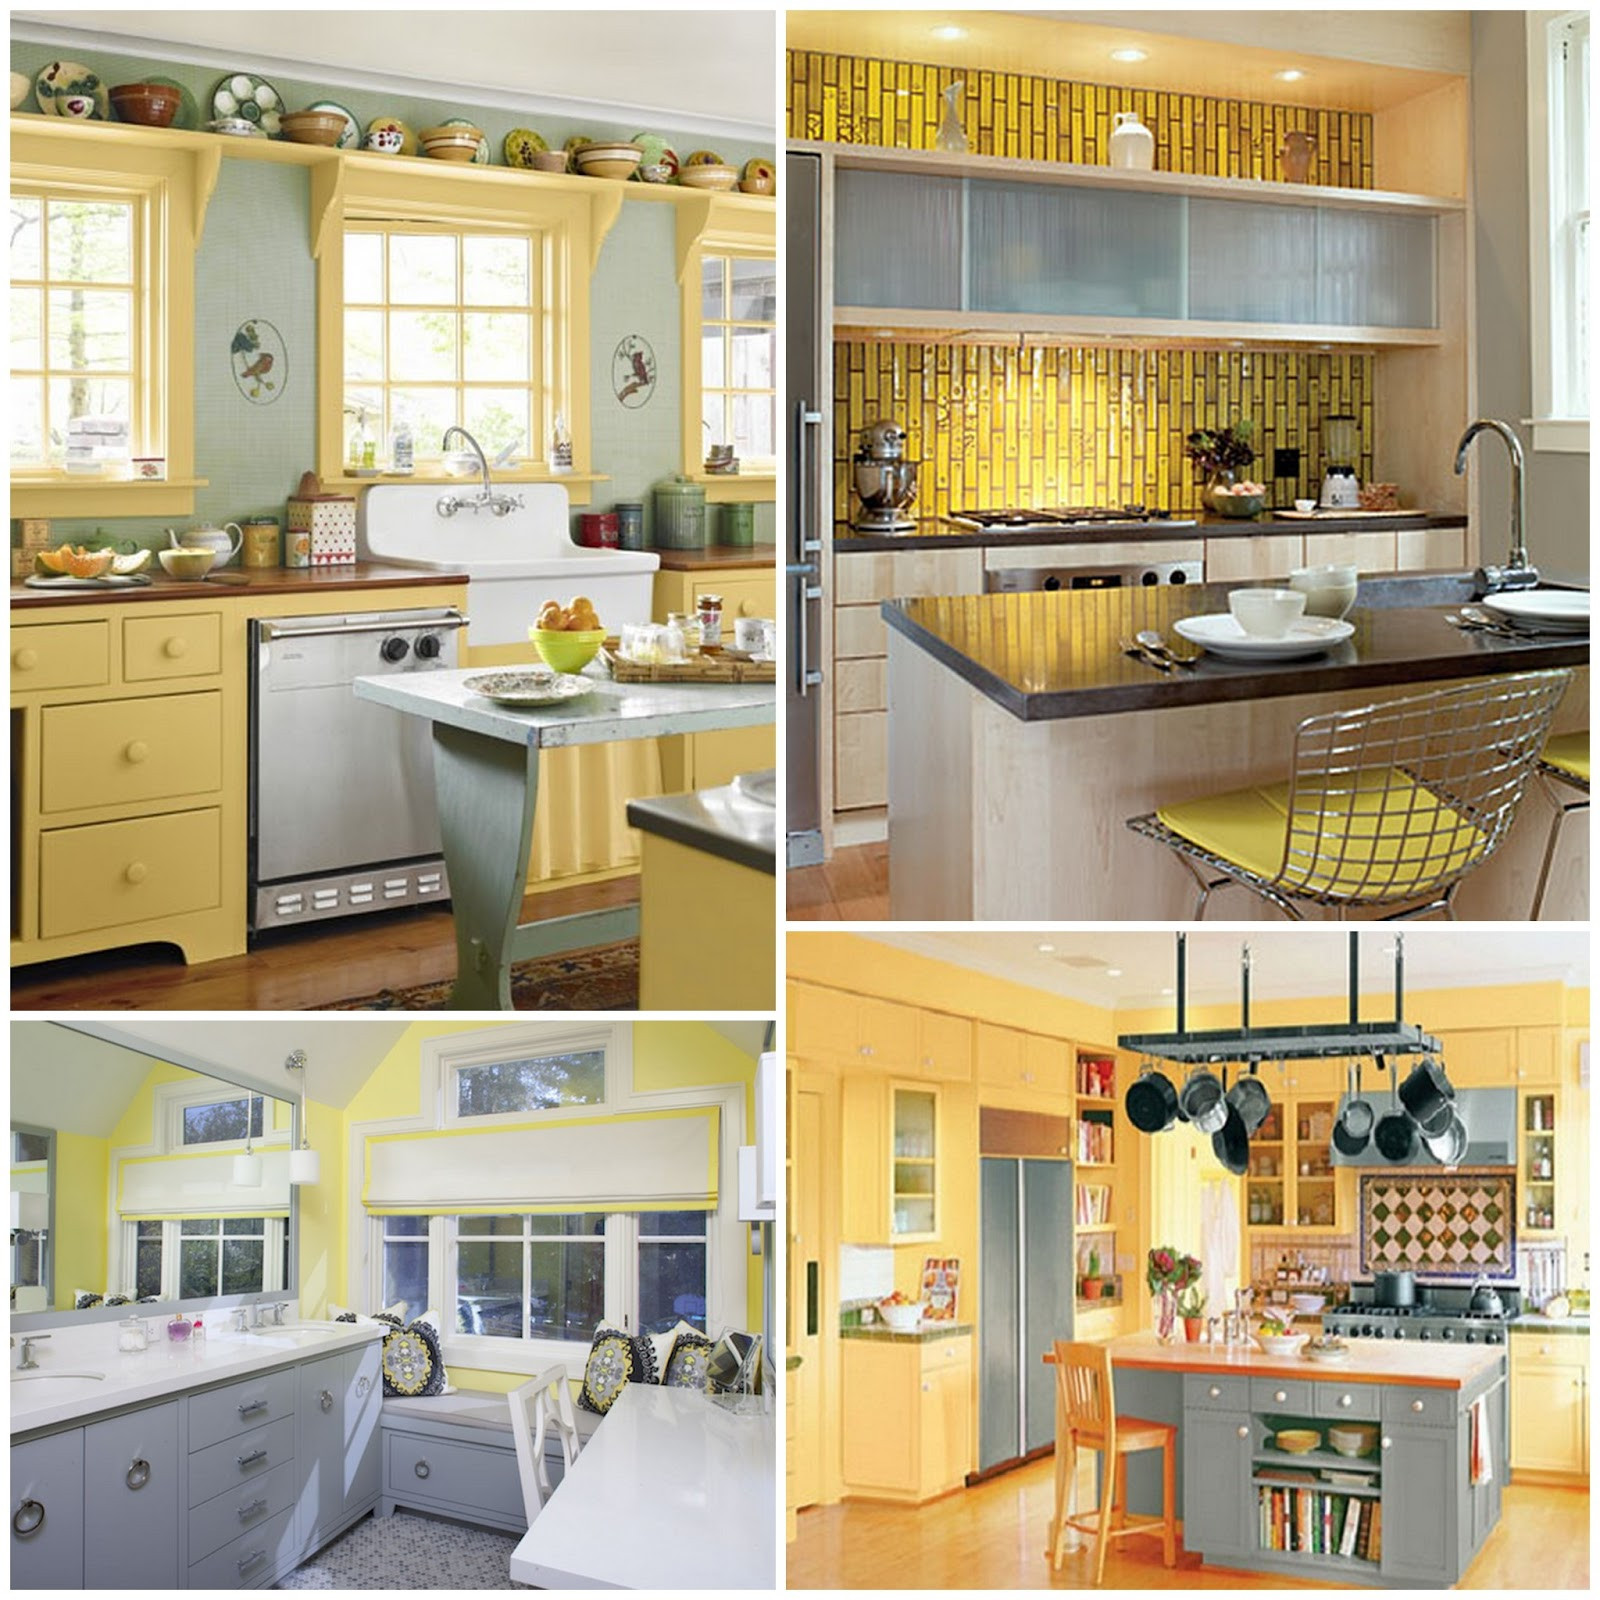 Best ideas about Yellow And Grey Kitchen Decor . Save or Pin Passion Pink & Pearls Becca s Yellow and Gray Kitchen Now.